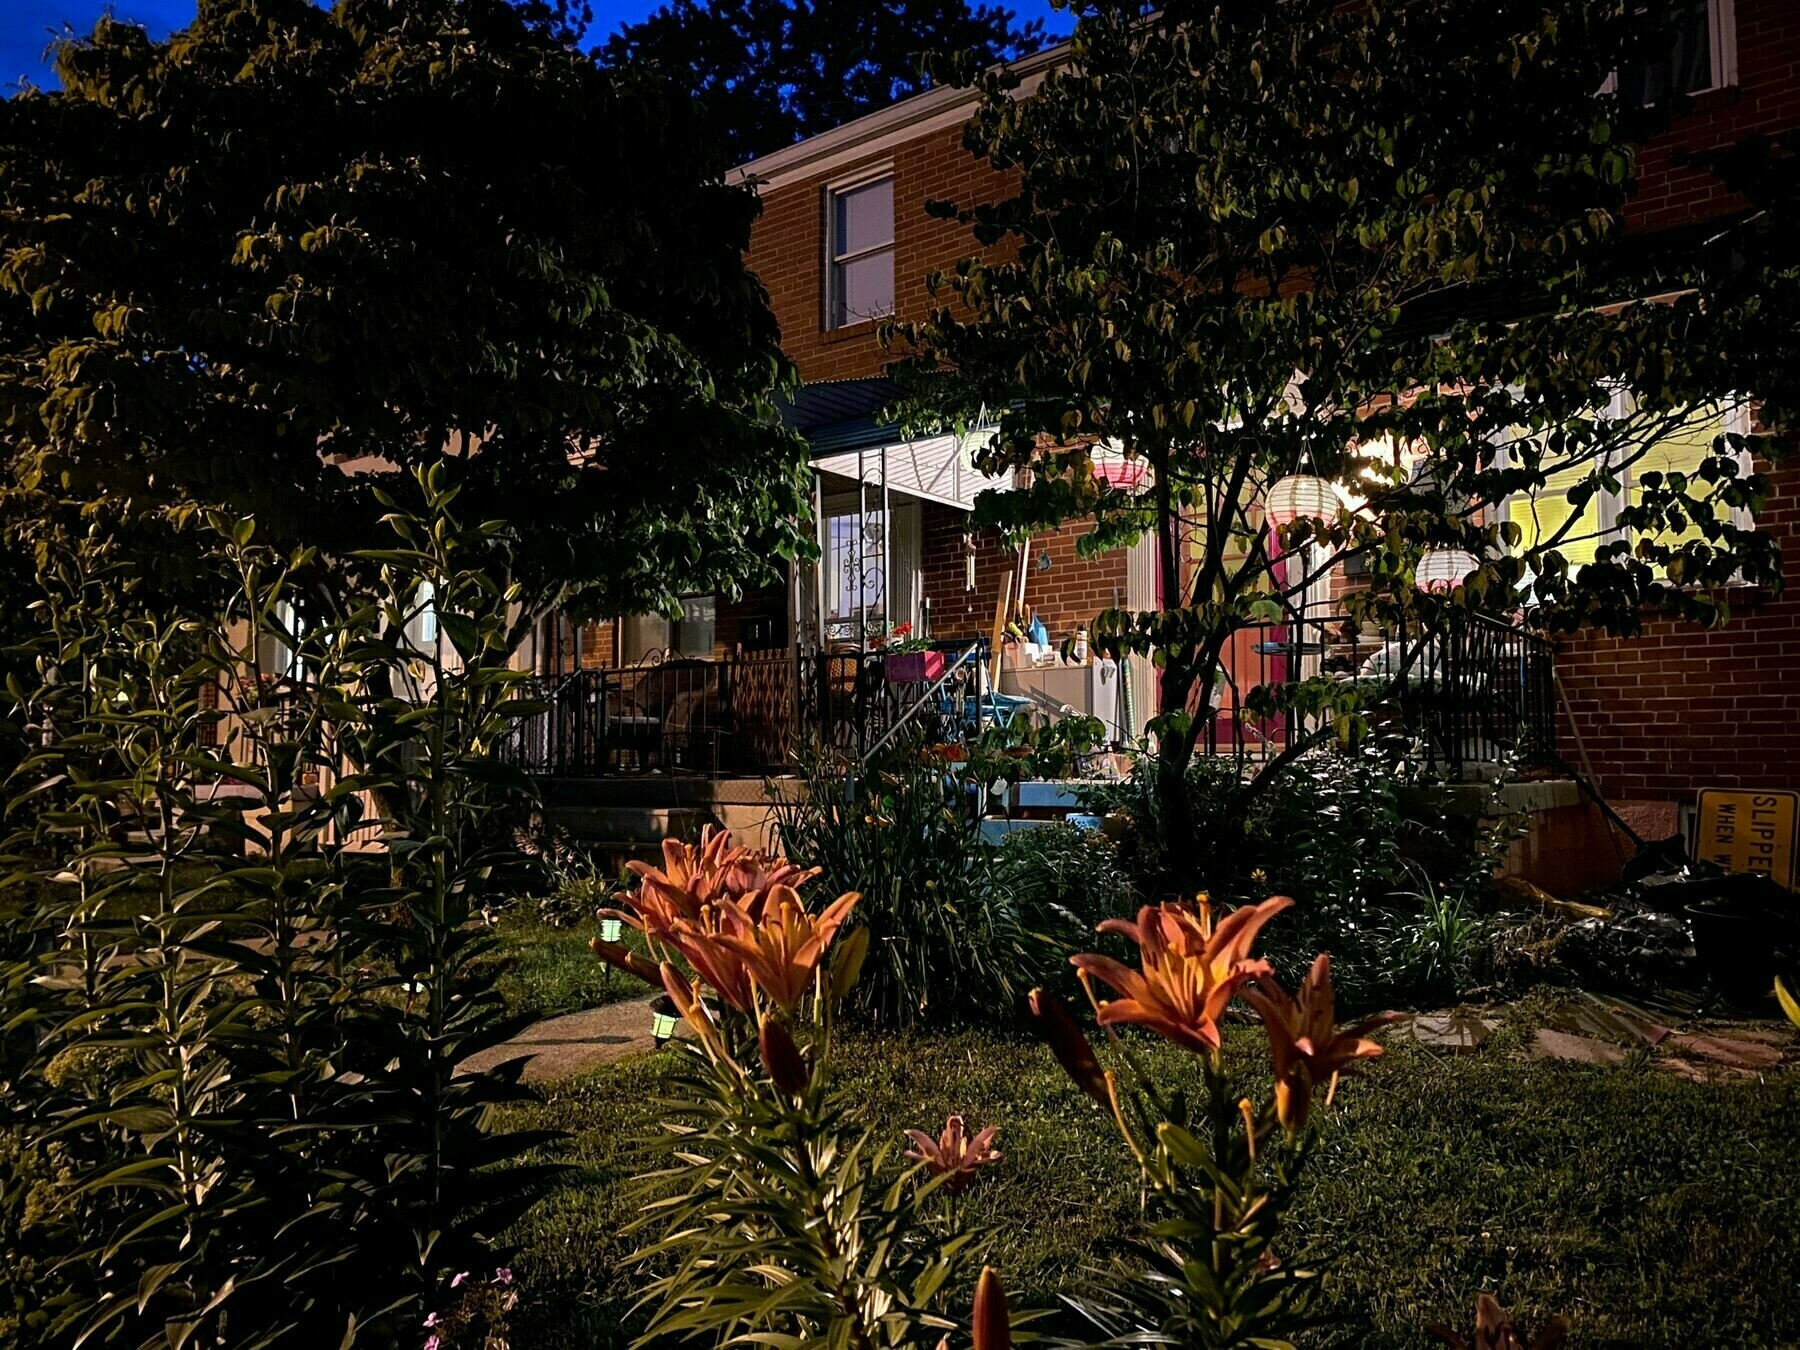 A nighttime photo of a house with latterns in its tree, a porch, and great flowers.